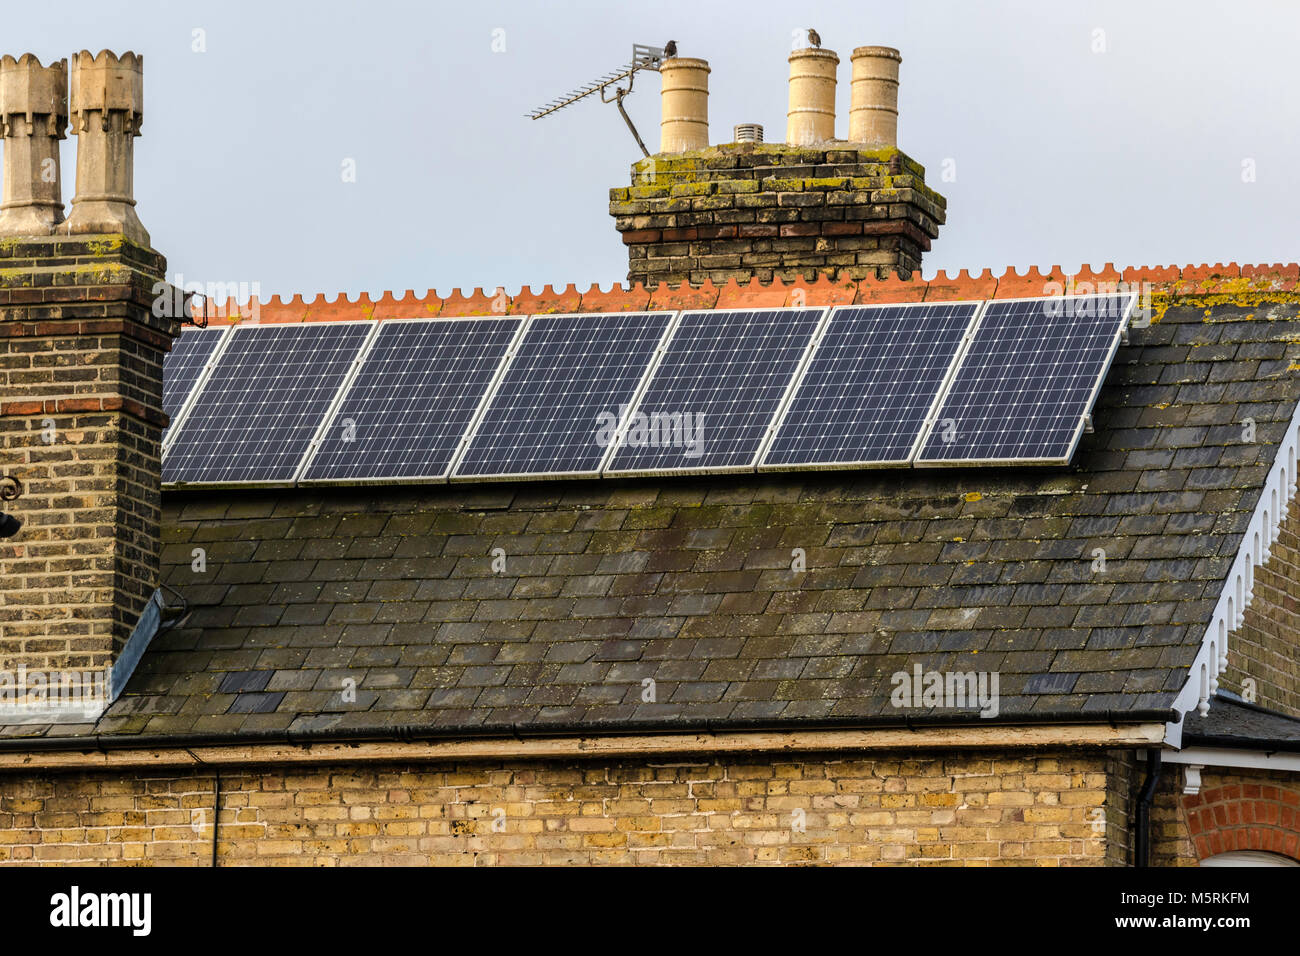 England. Solar power panels on slate roof, old brick house. Chimney pots on side and in middle. Two sources of energy. - Stock Image